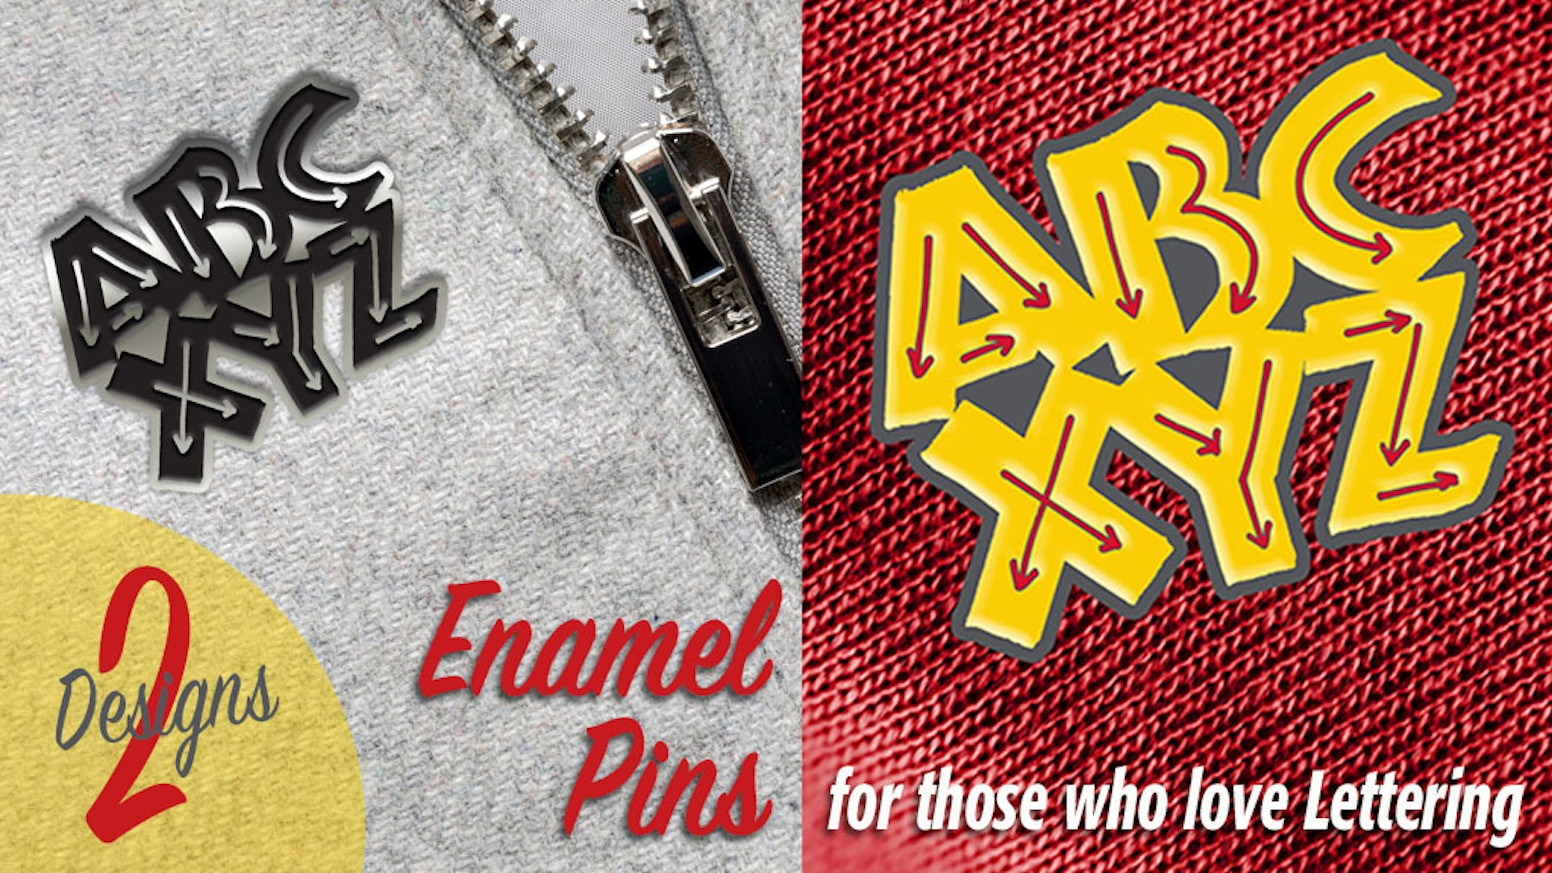 A fun accessory for anyone who loves lettering or calligraphy. Wear it as a statement or add it to your pin collection!